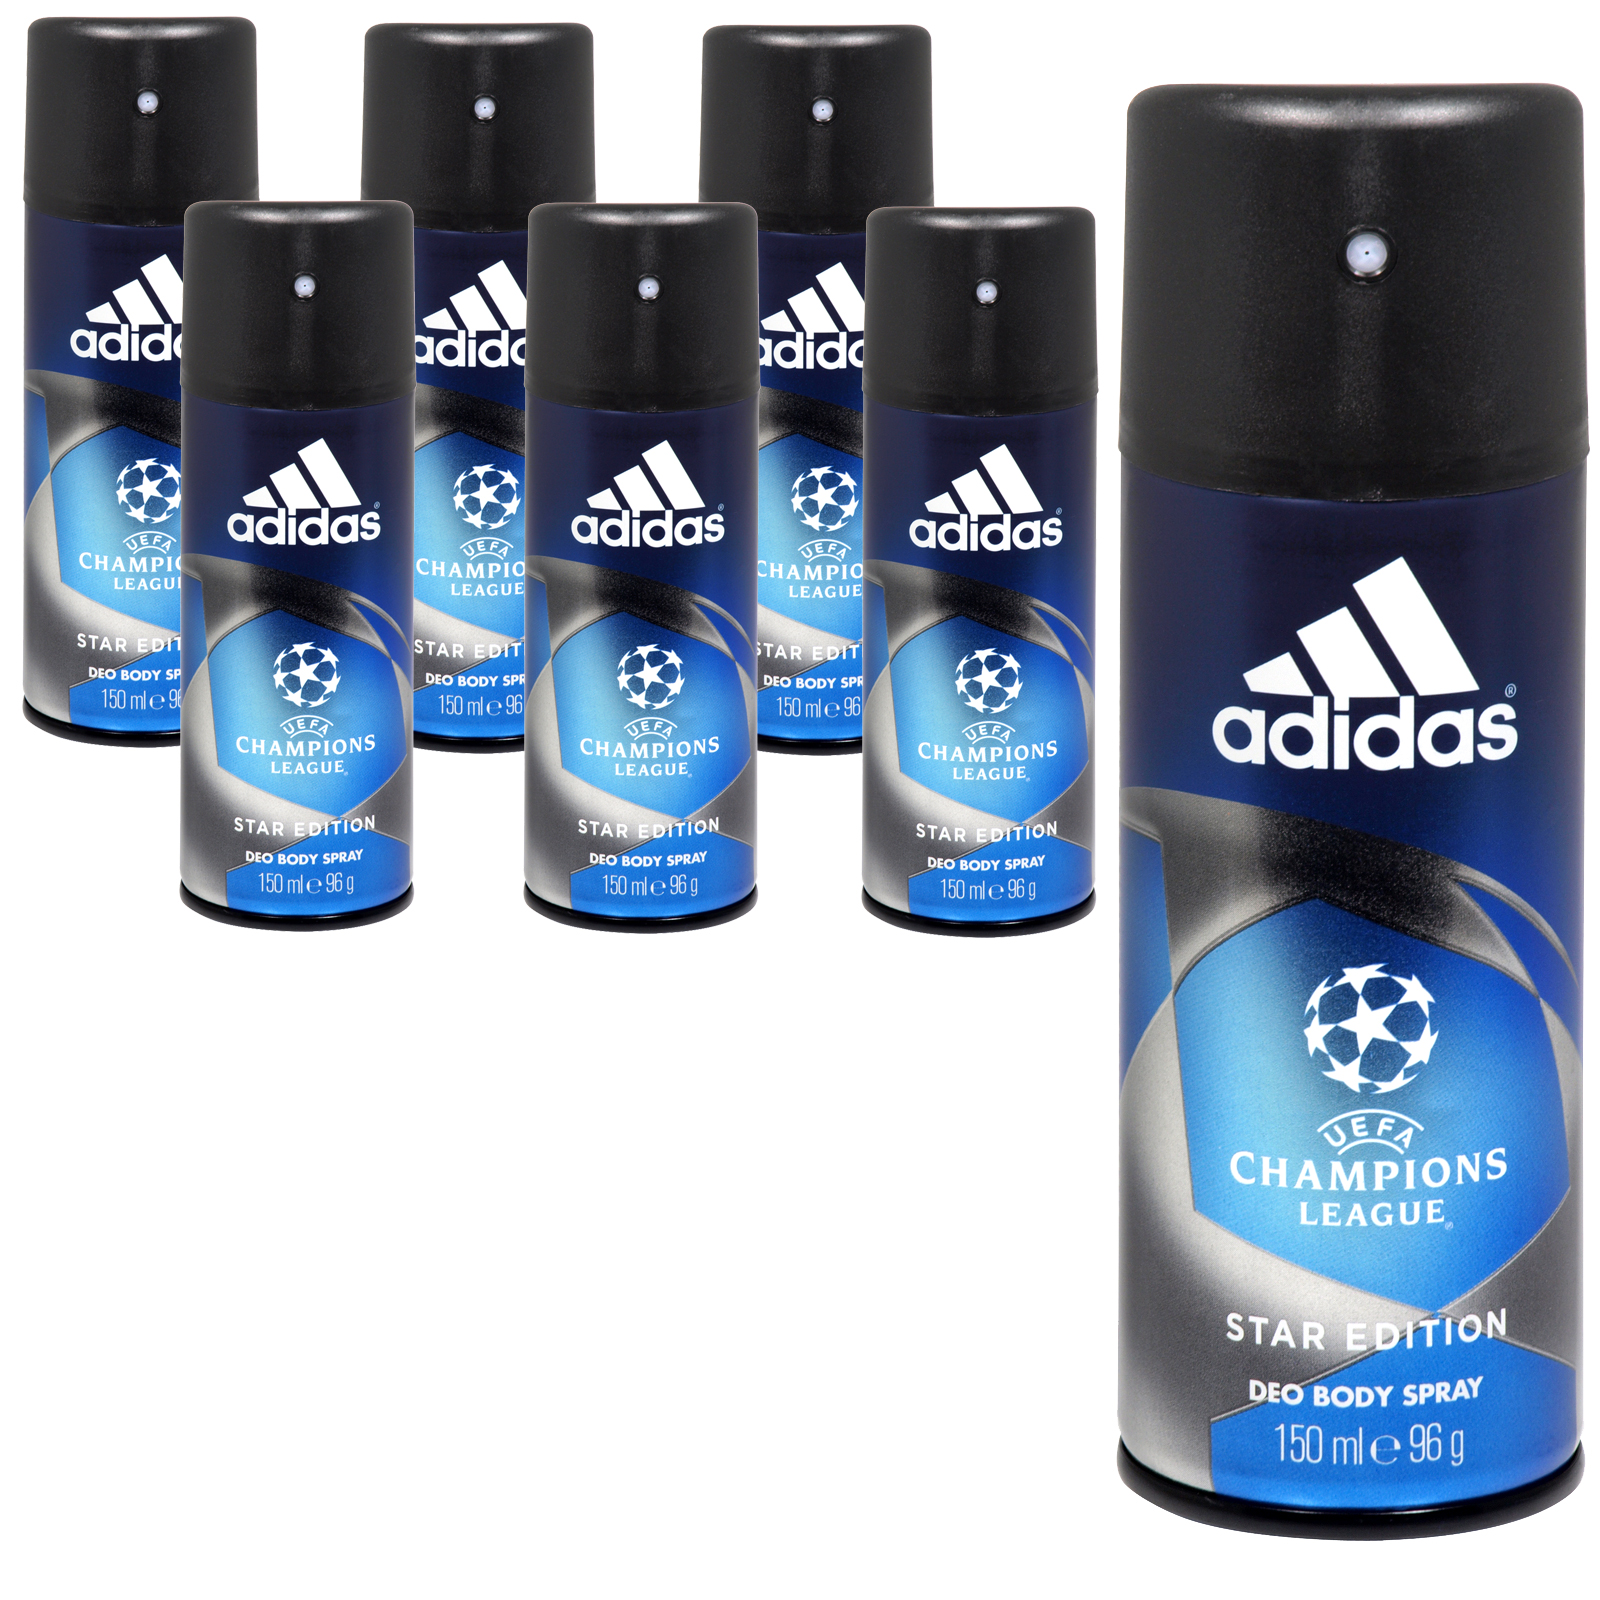 ADIDAS DEO BODY SPRAY 150ML CHAMPIONS LEAGUE STAR EDITION NO 2 X6